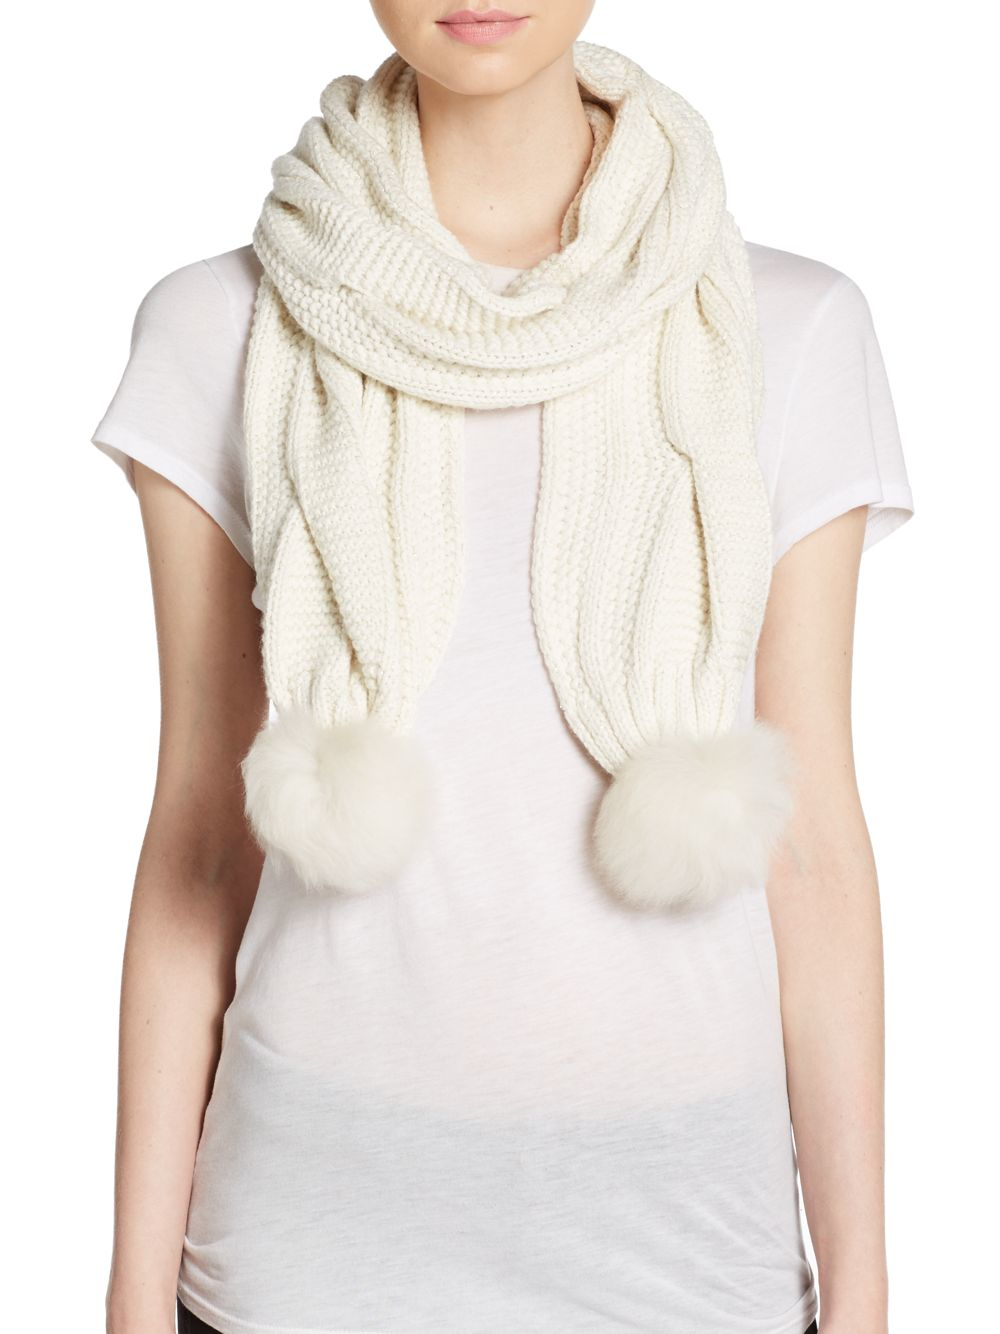 Knitting Pattern For Scarf With Pom Poms : Ugg Cable-knit Pom-pom Scarf in Natural Lyst